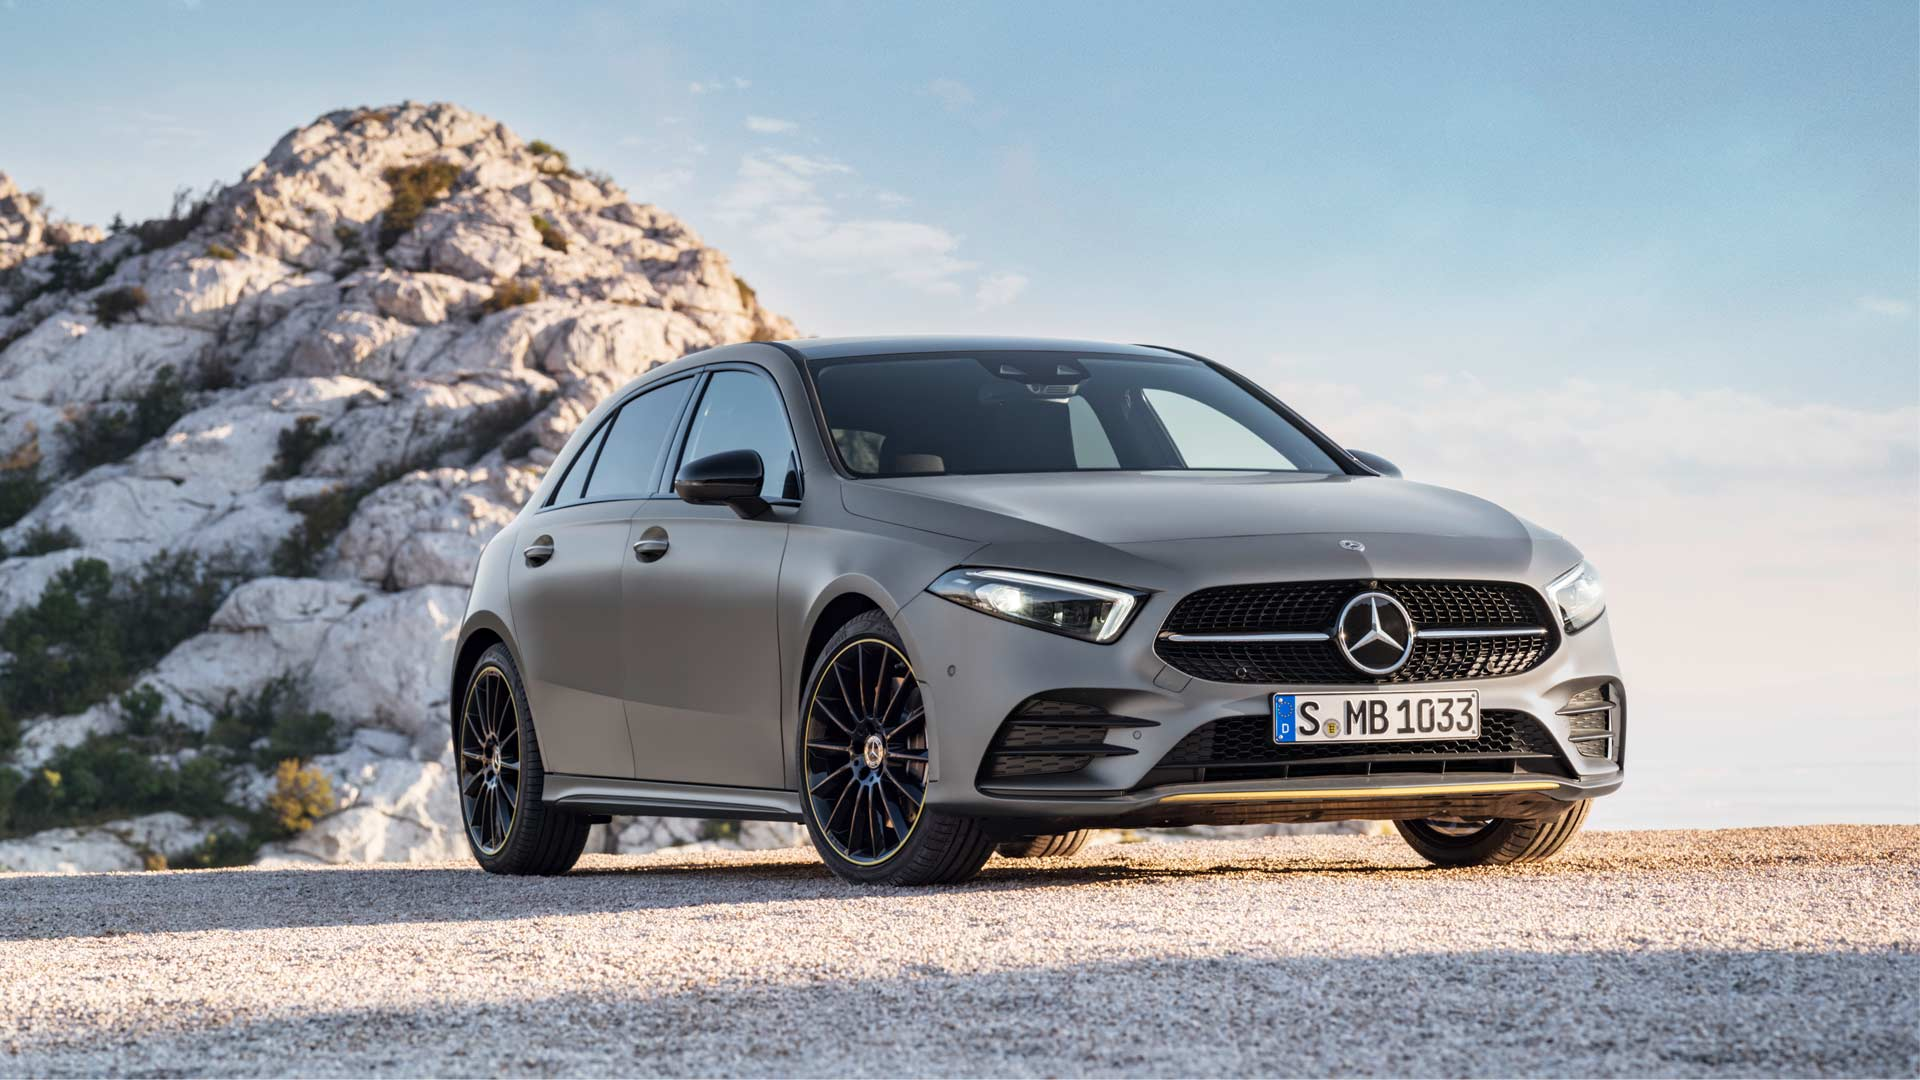 2018 4th generation Mercedes-Benz A-Class Edition 1